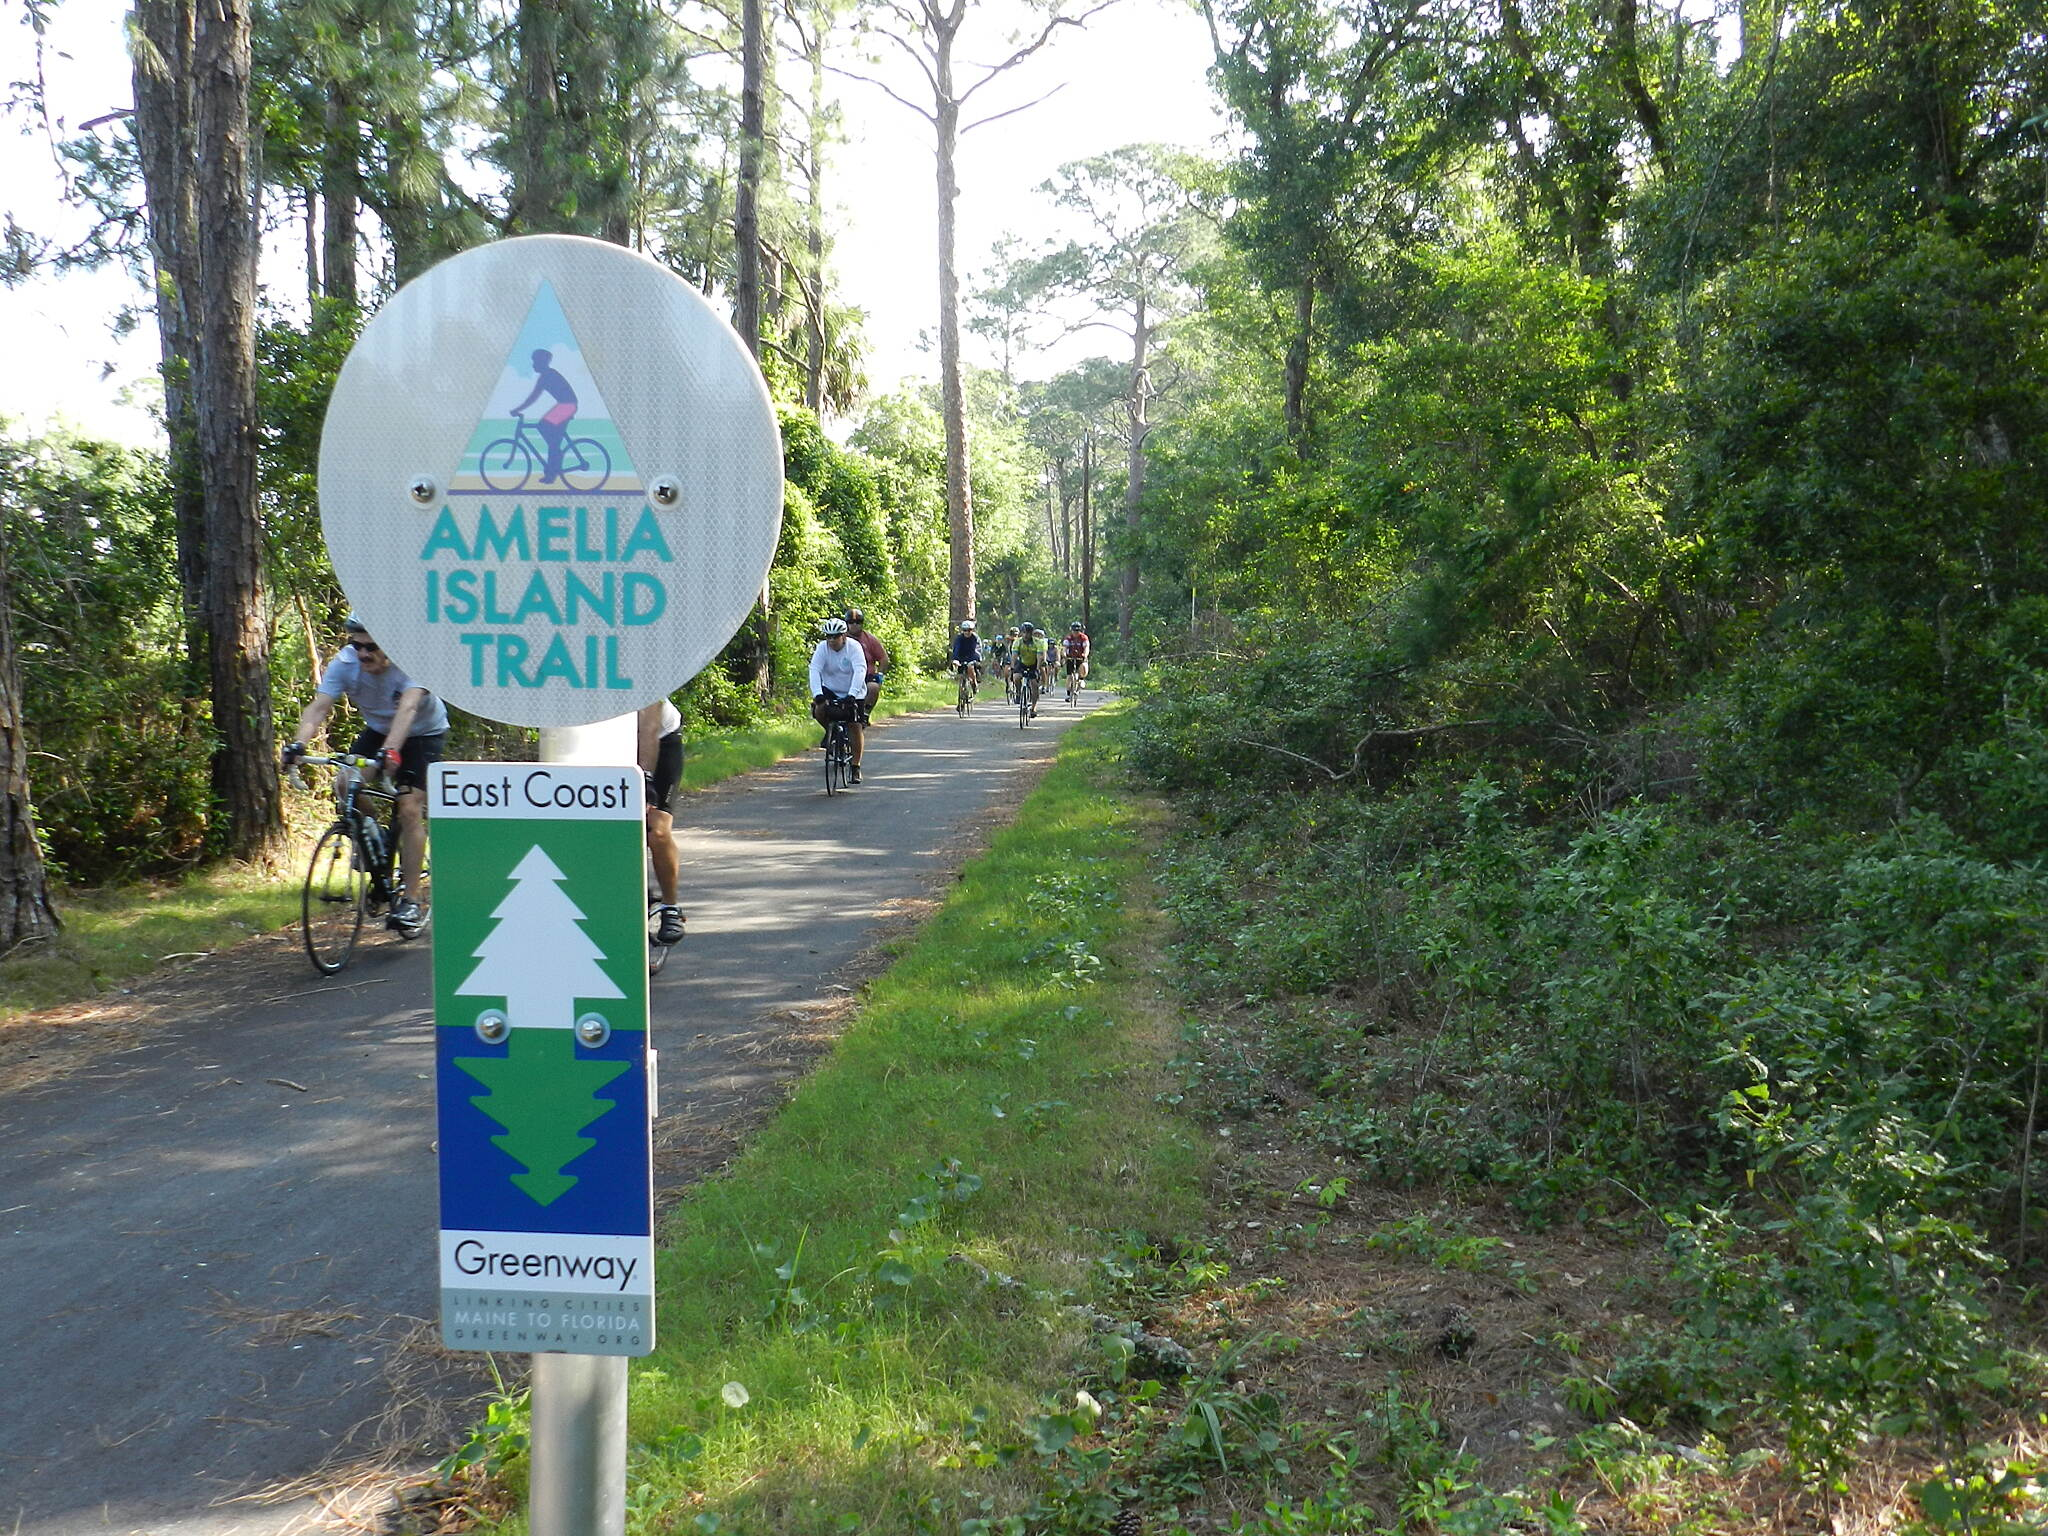 Amelia Island Trail Sign post shared by the AIT and East Coast Greenway This is the trail's southern entrance at Amelia Island State Park. Construction of the Big Talbot Island link will begin soon, allowing riders to continue south into Duval County and to Talbot Islands State Park via the Crady Bridge spanning Nassau Sound.